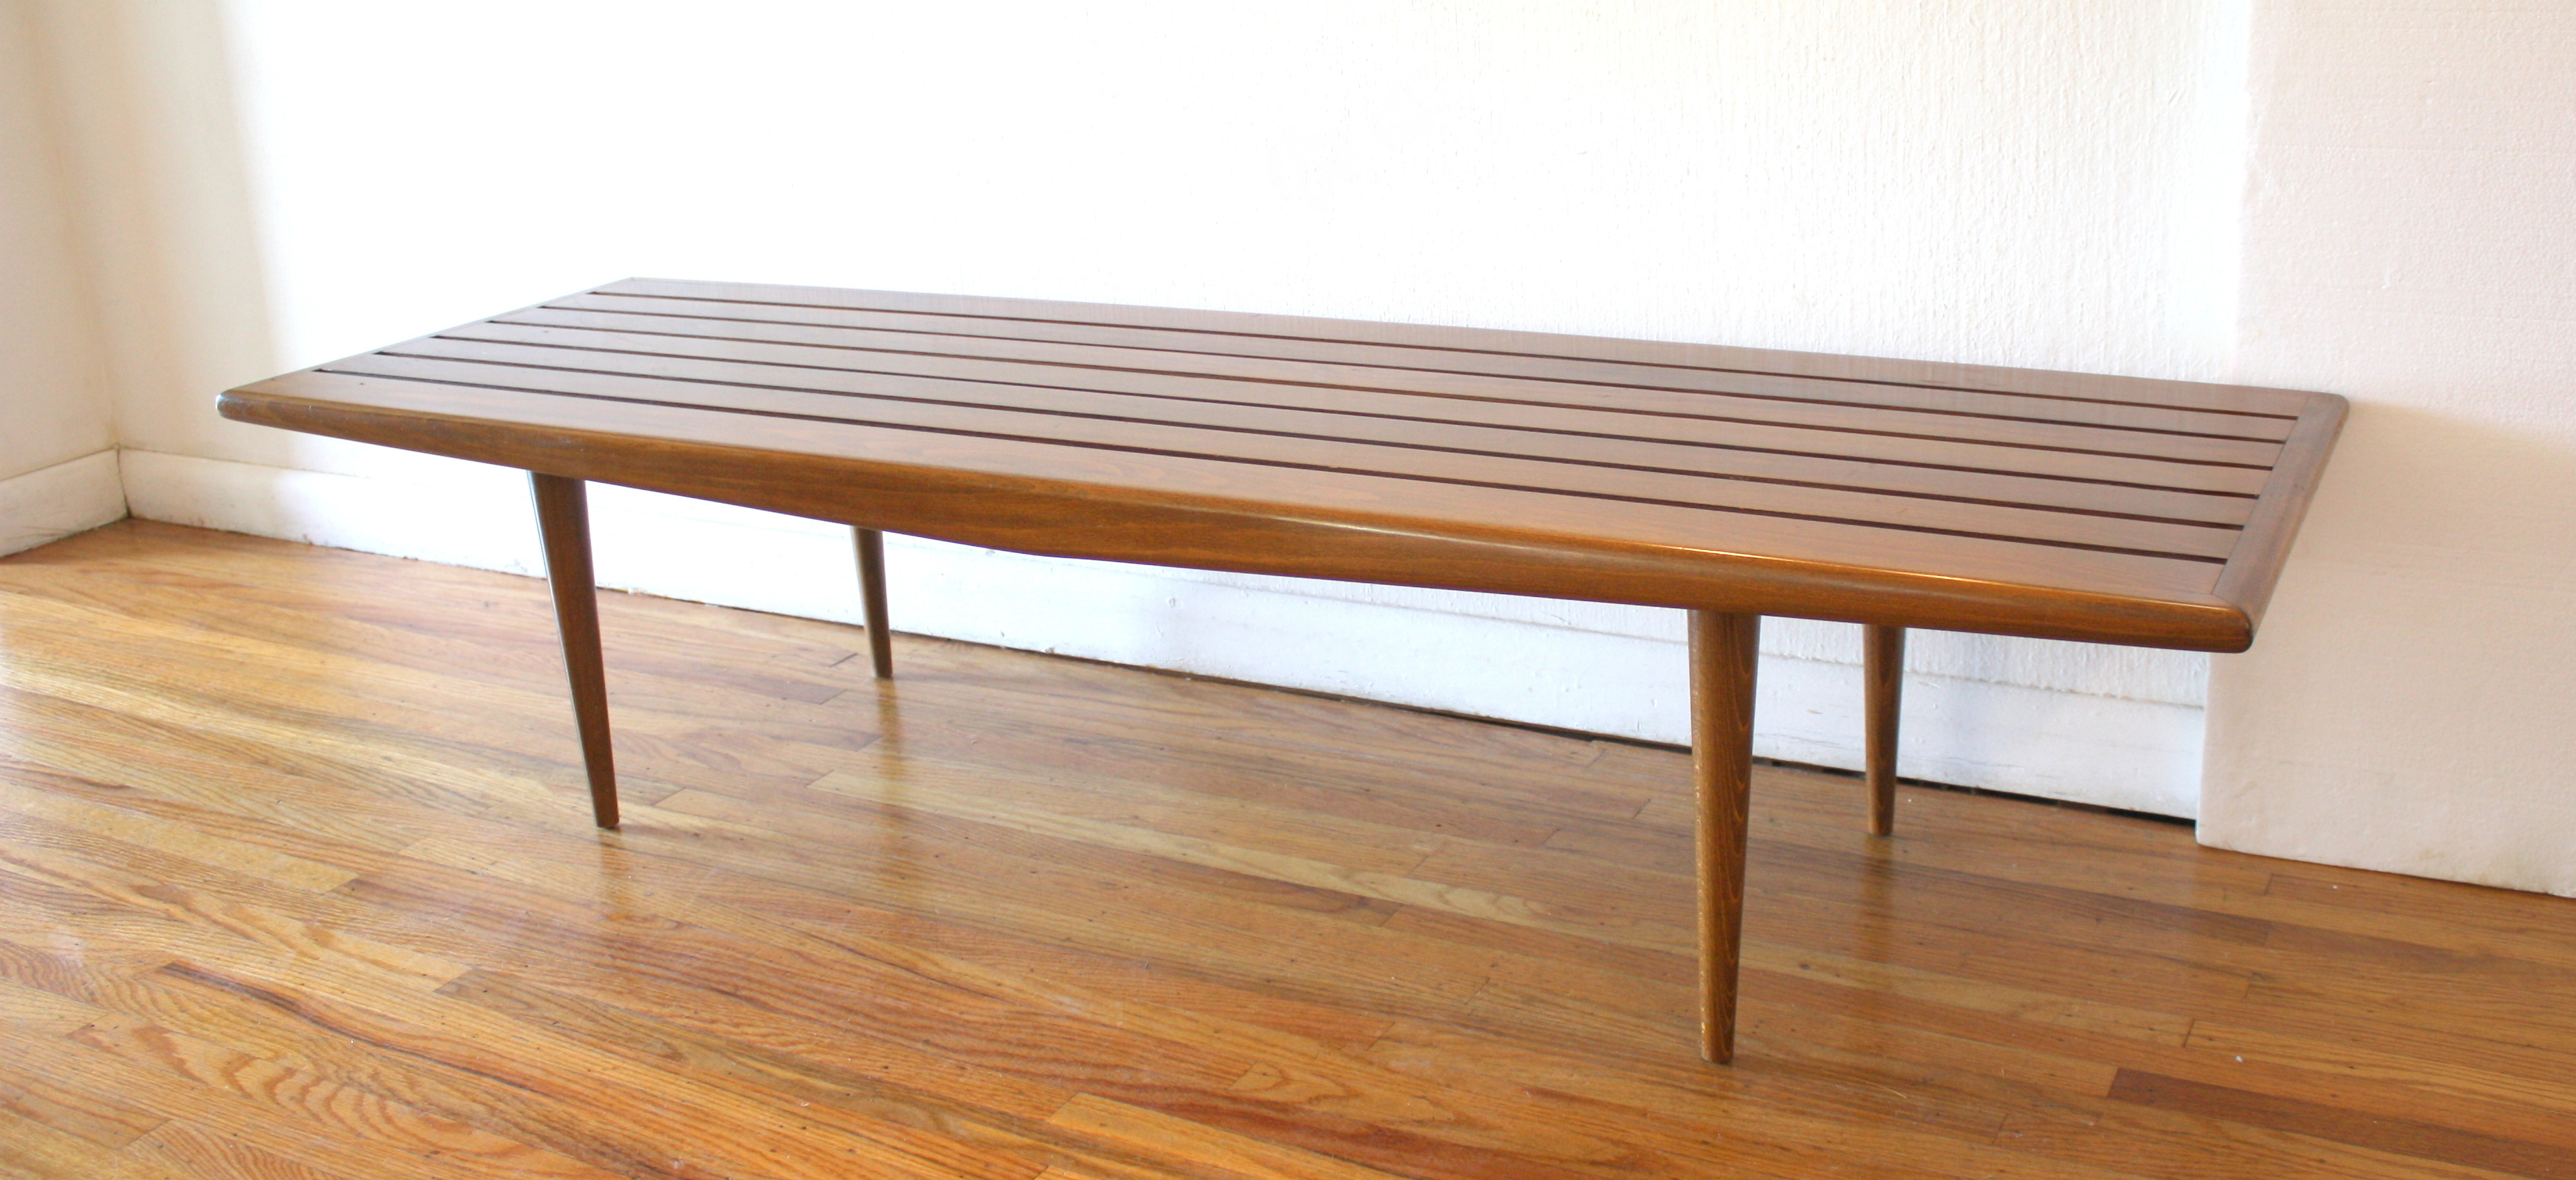 mcm slatted bench with arch 2